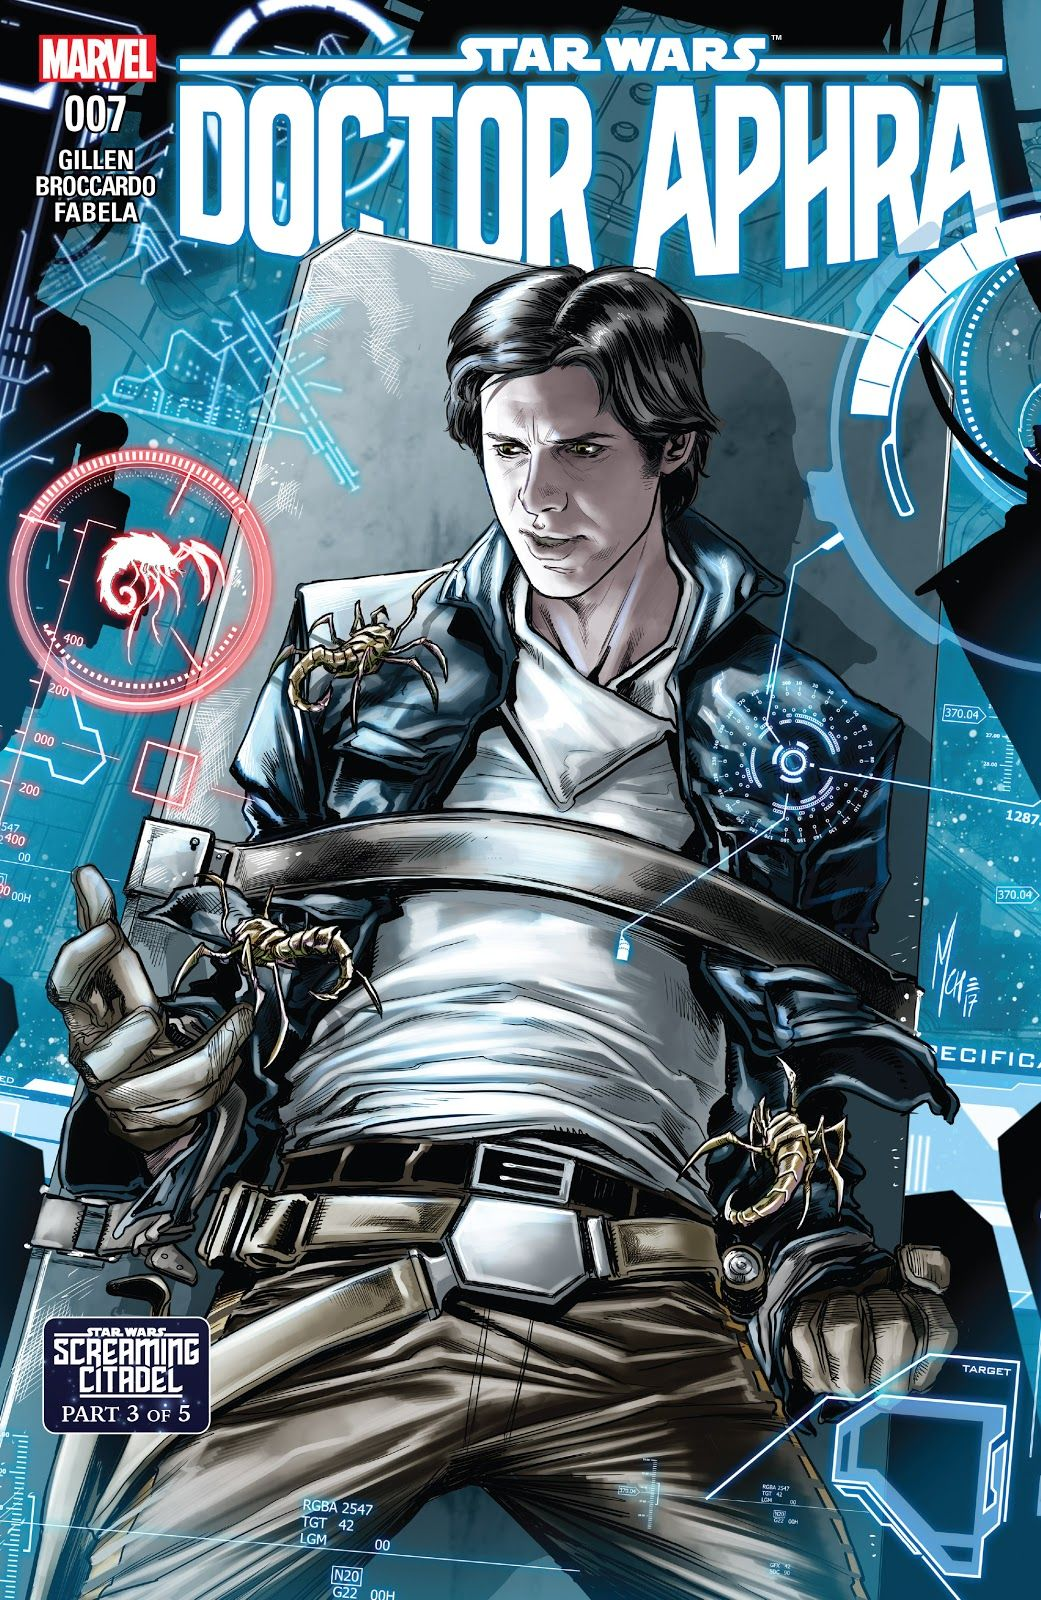 doctor aphra issue 7 read doctor aphra issue 7 comic online in